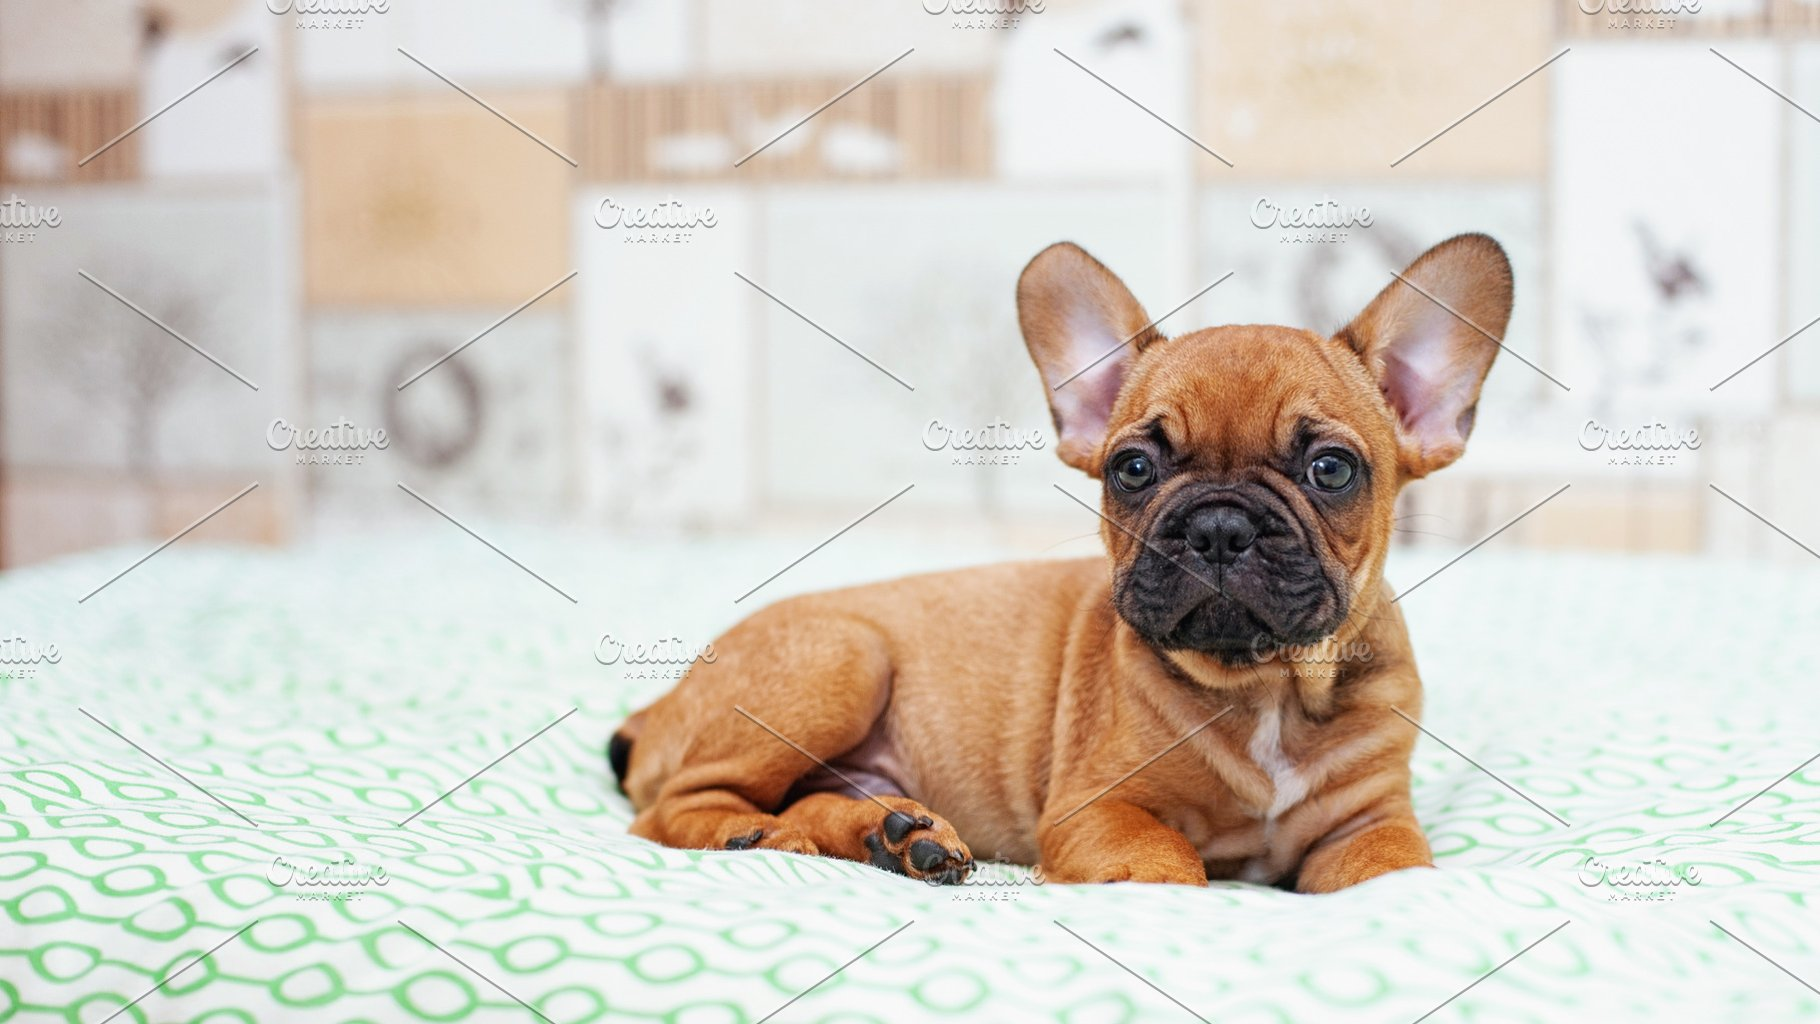 Cute French Bulldog Puppy High Quality Animal Stock Photos